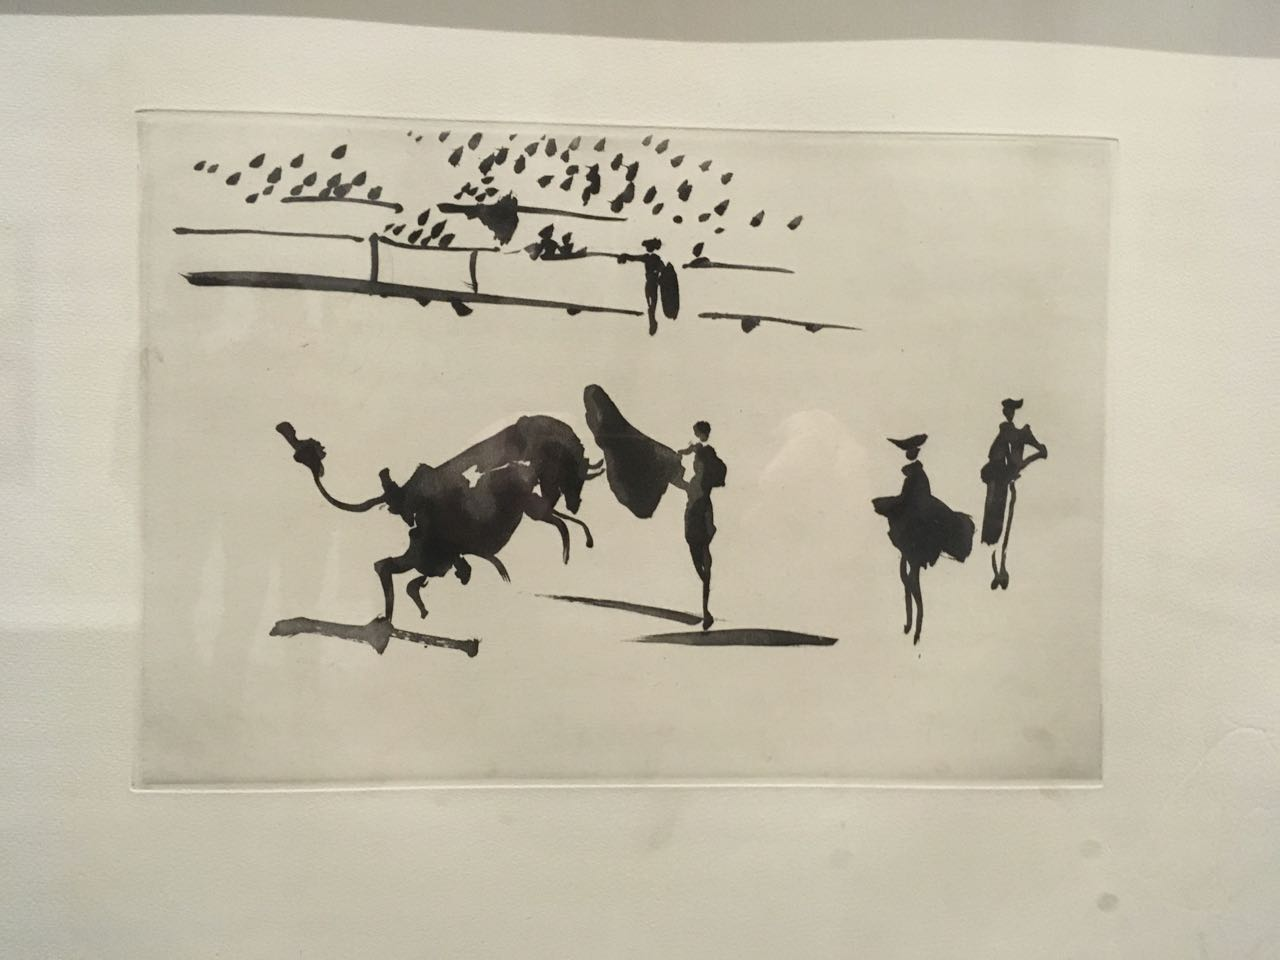 'La tauromaquia o Arte de torear' - The art of bullfighting. 26     aquatints by Picasso